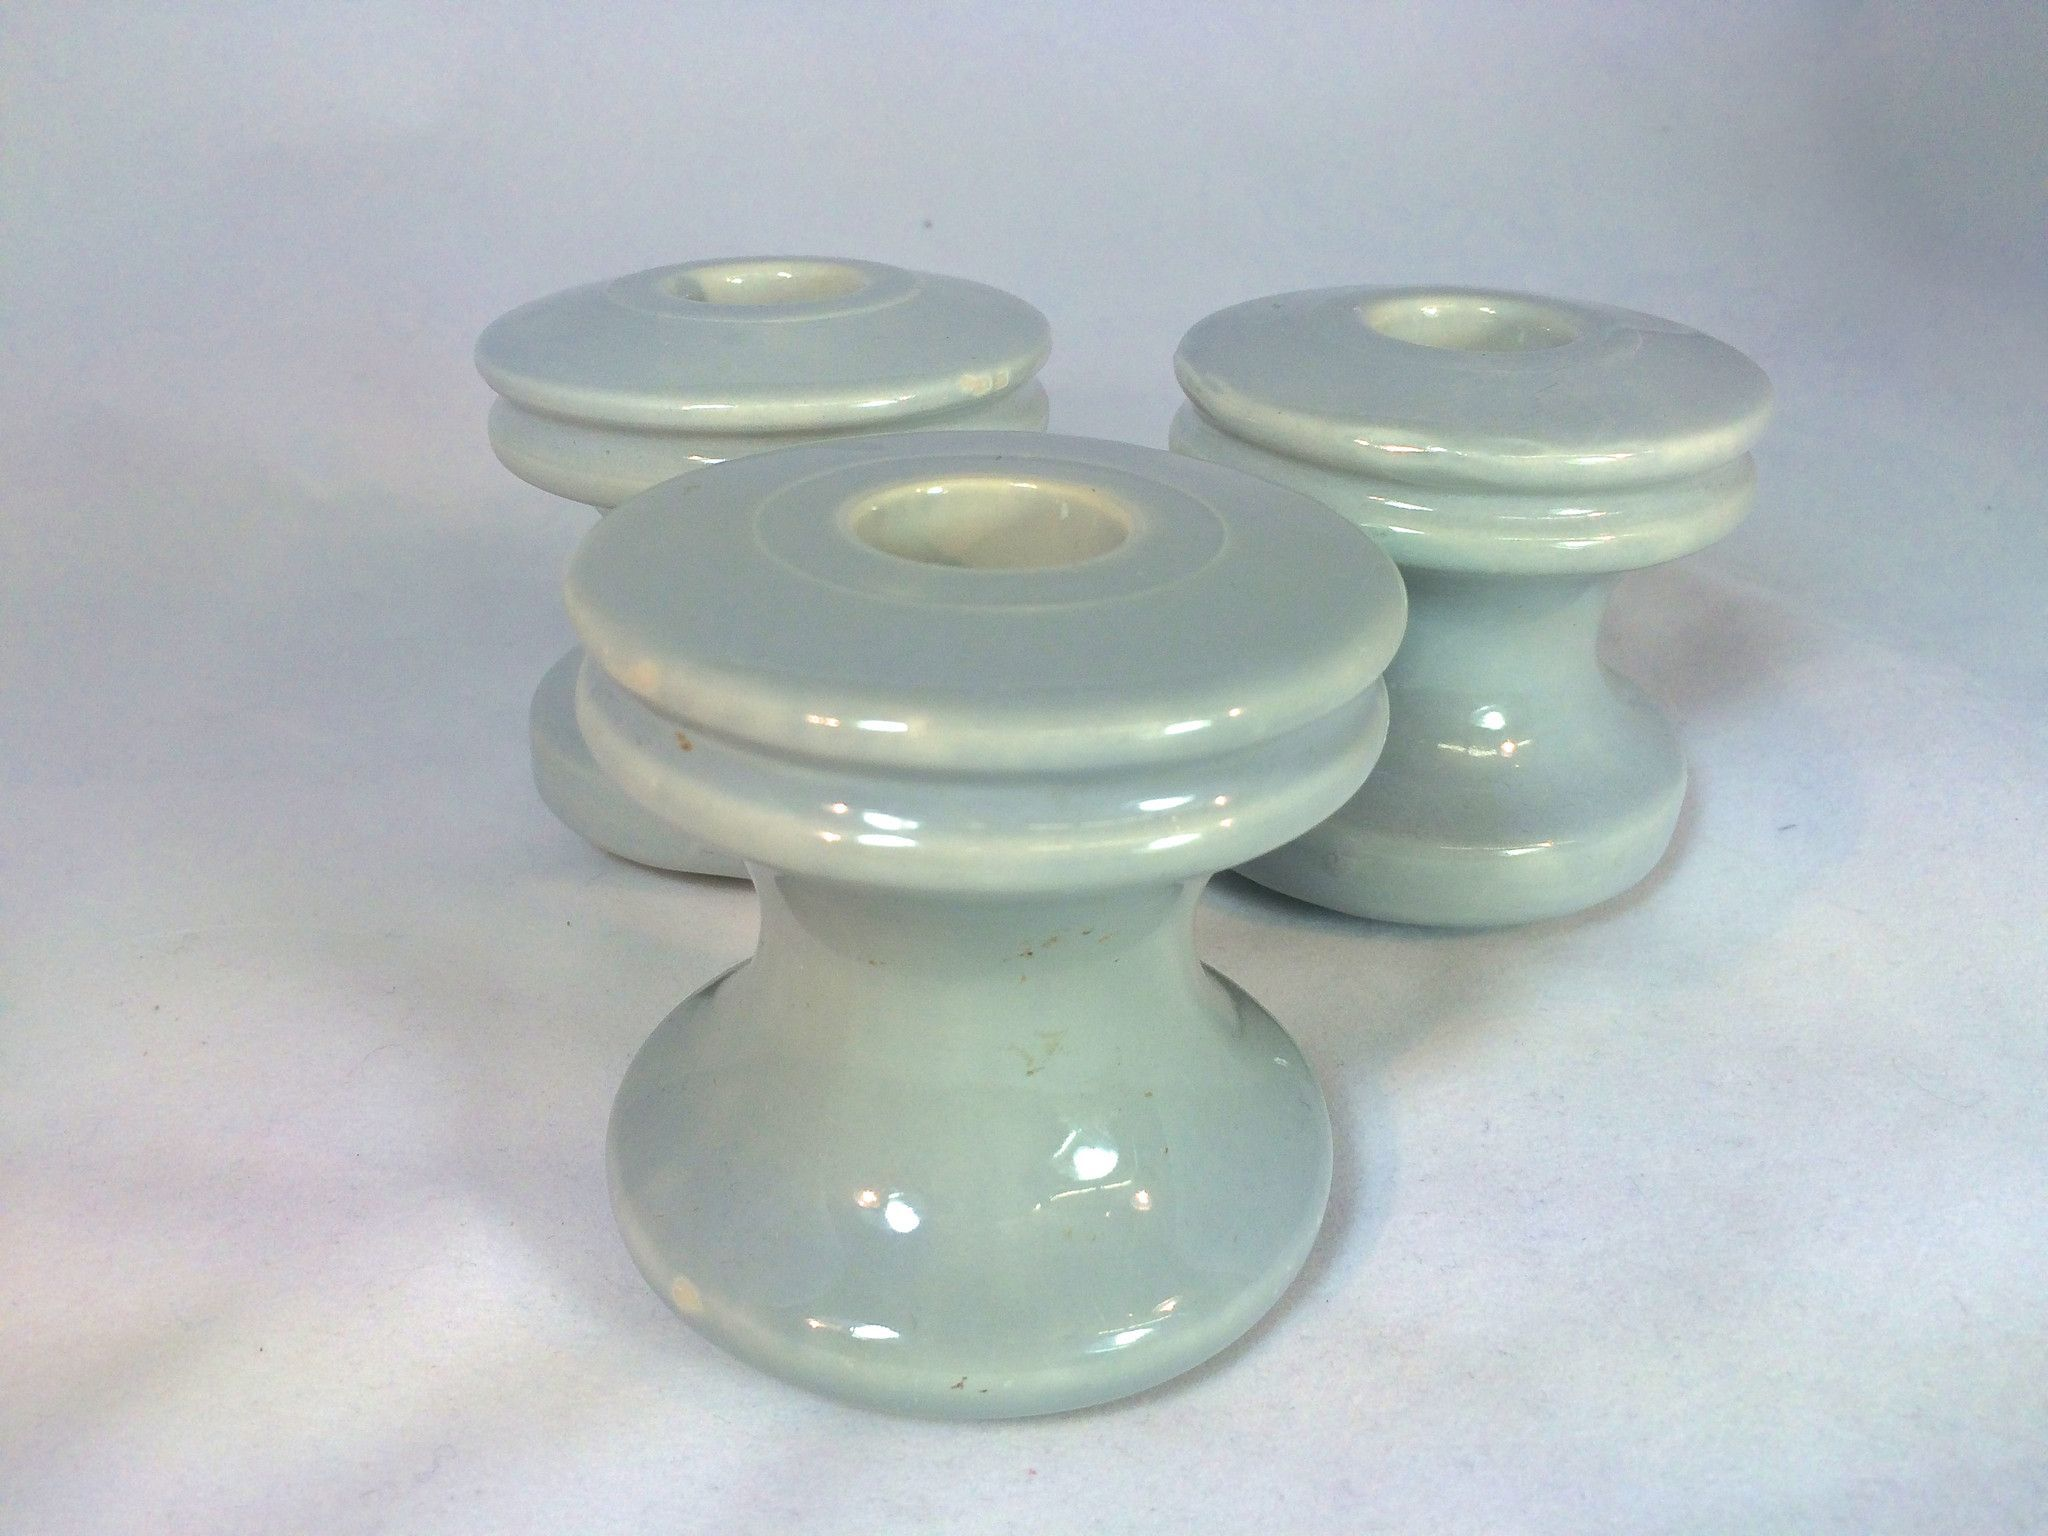 Blue porcelain insulators products pinterest glass for Collectible glass insulators